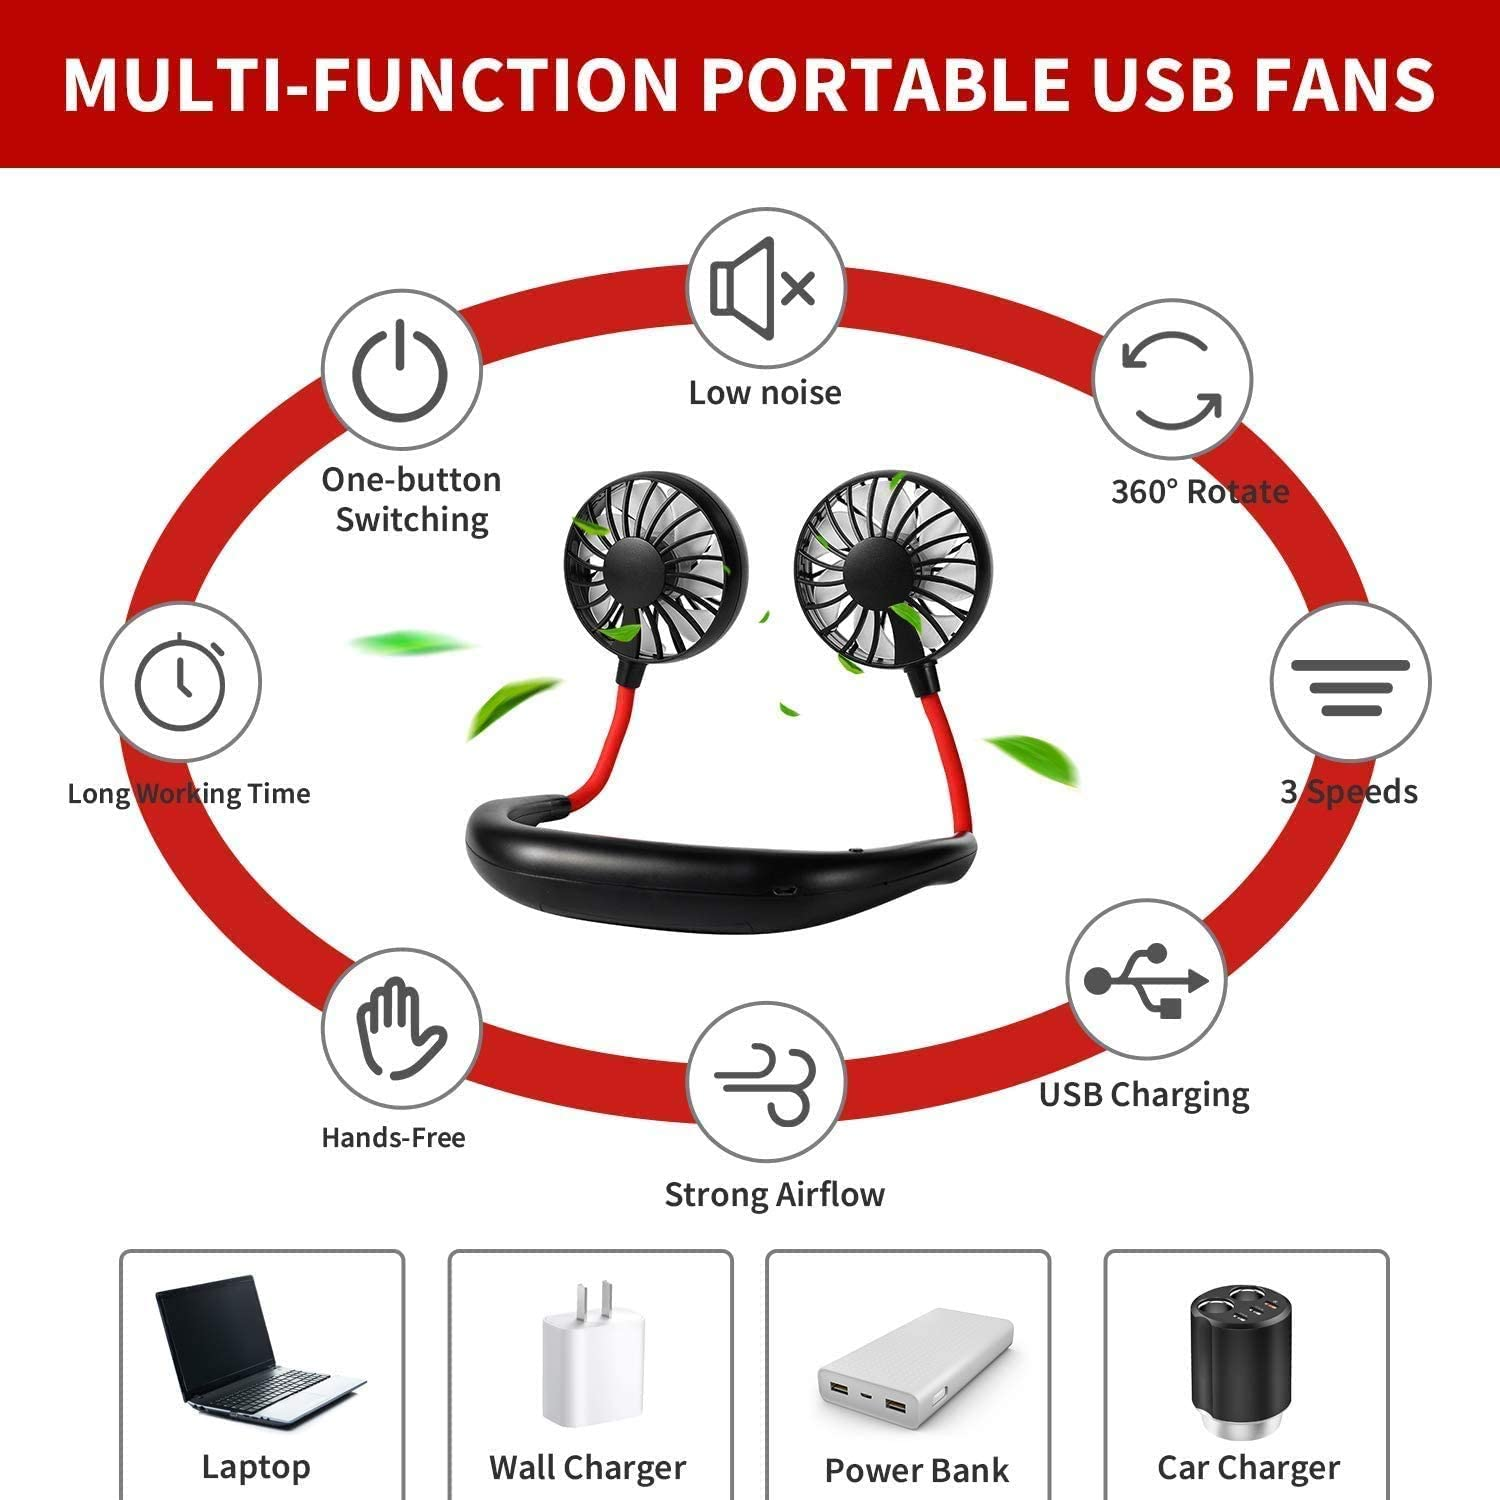 Personal Sport Neck Fan Portable, XUNMEJ Hand Free Mini USB Rechargeable Neckband Fans with 6-13 Hrs Runtime 2000mAh 3 Speed 360 Degrees Free Rotation for Aromatherapy Cooking Outdoor Travel, Blue